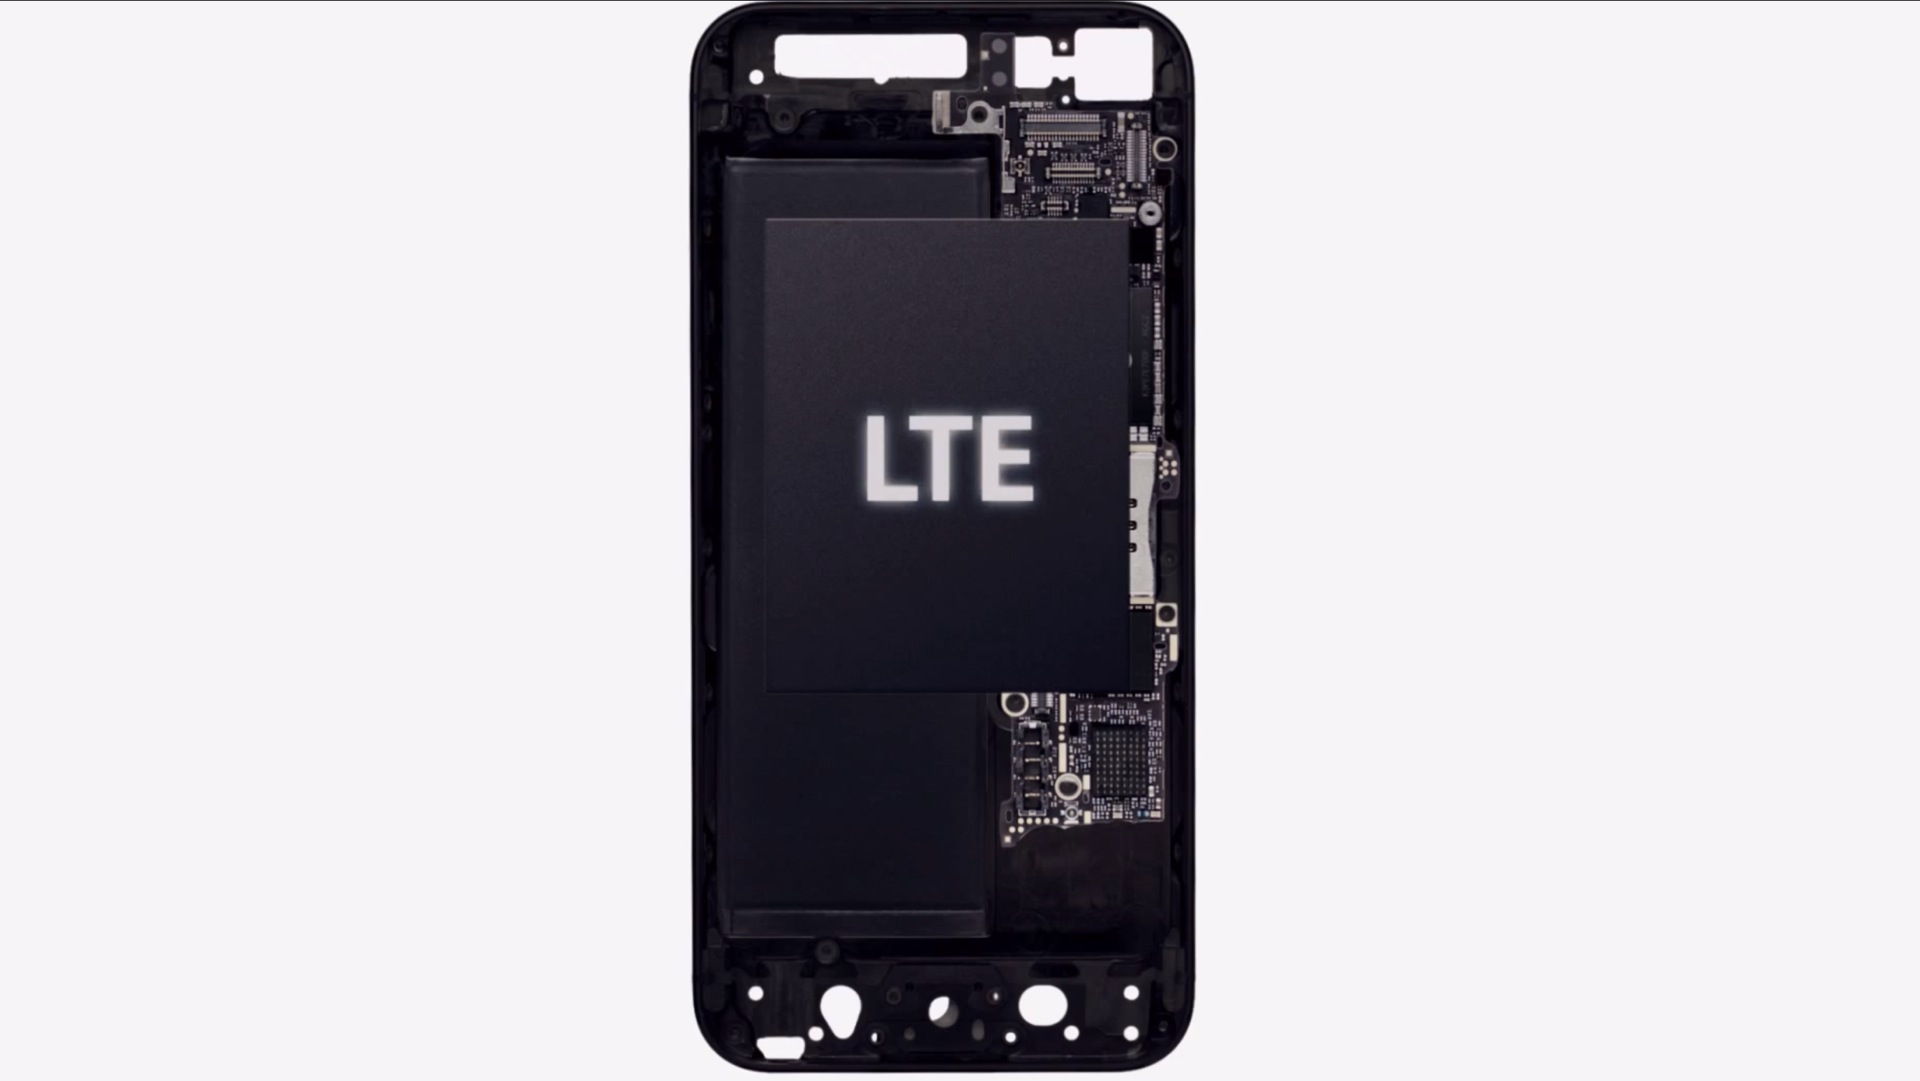 iPhone 5 promo (LTE chip 001)